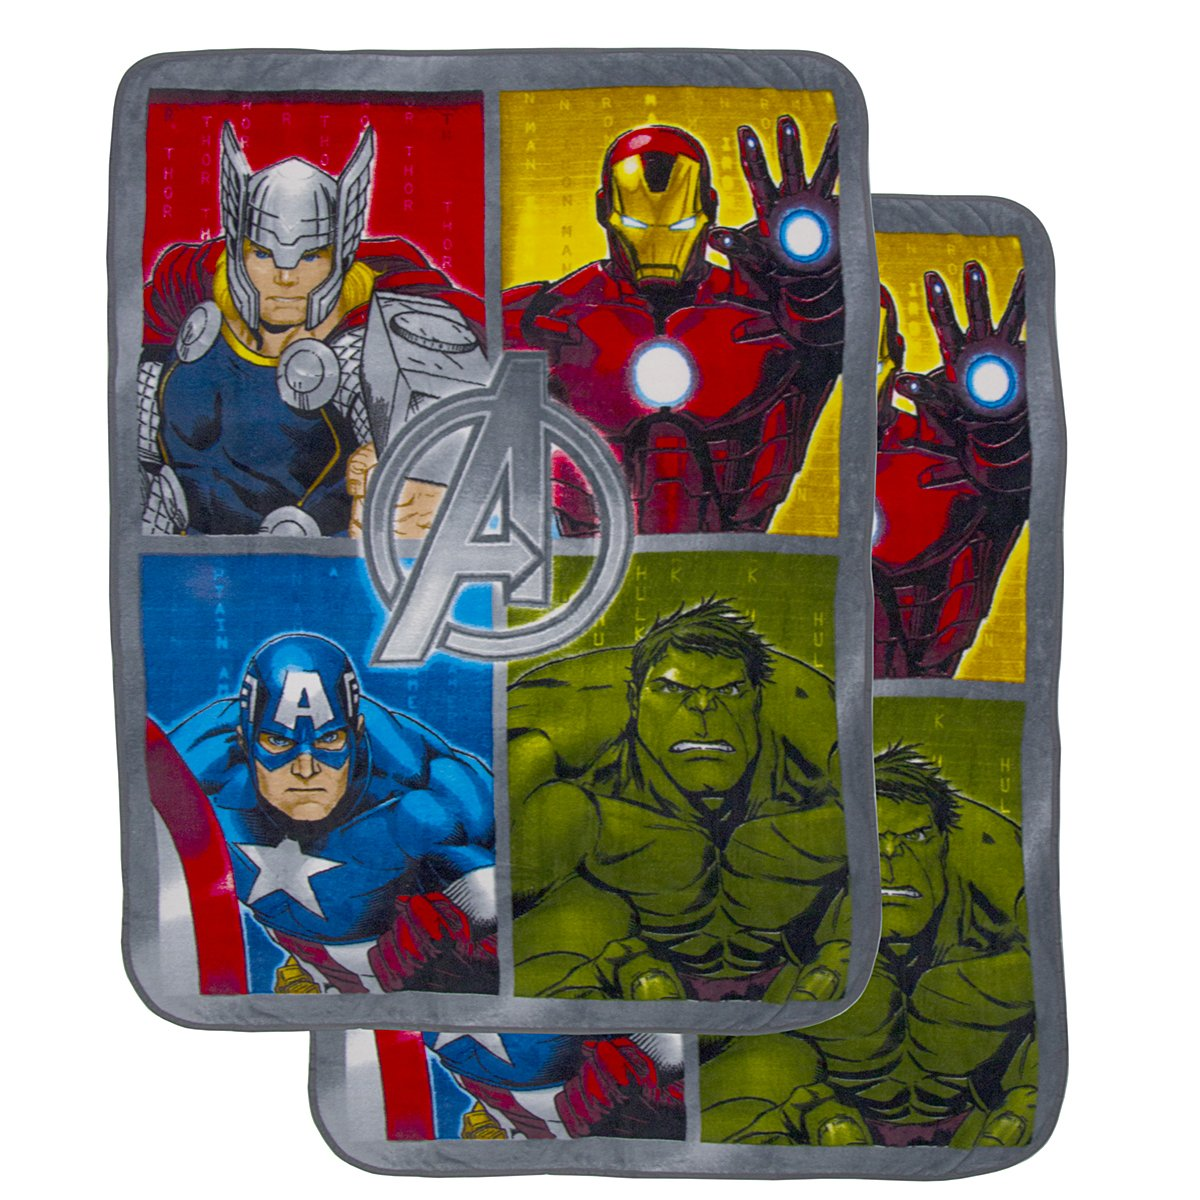 "2 Pack Cozy Inside Out Or The Avengers Soft Fleece 46x60"" Plush Throw Blankets For Kids Girl Boy"